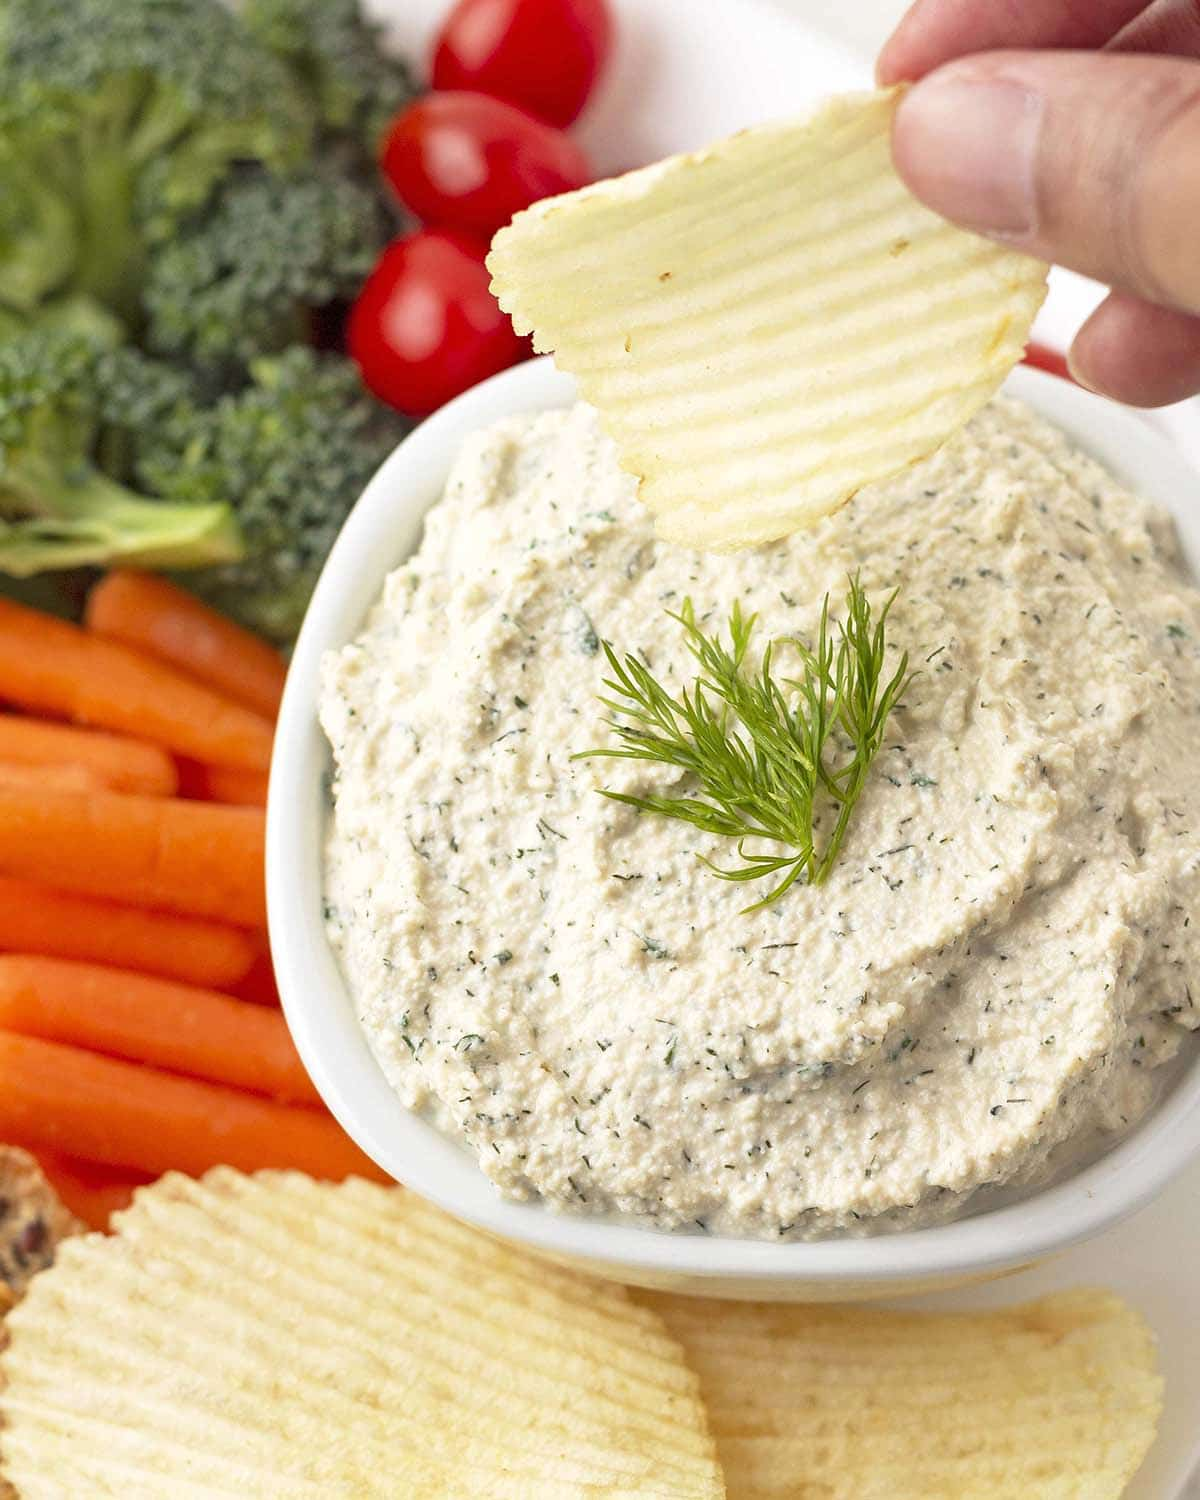 A hand dipping a potato chip into a bowl of dip, veggies and chips surround the bowl.